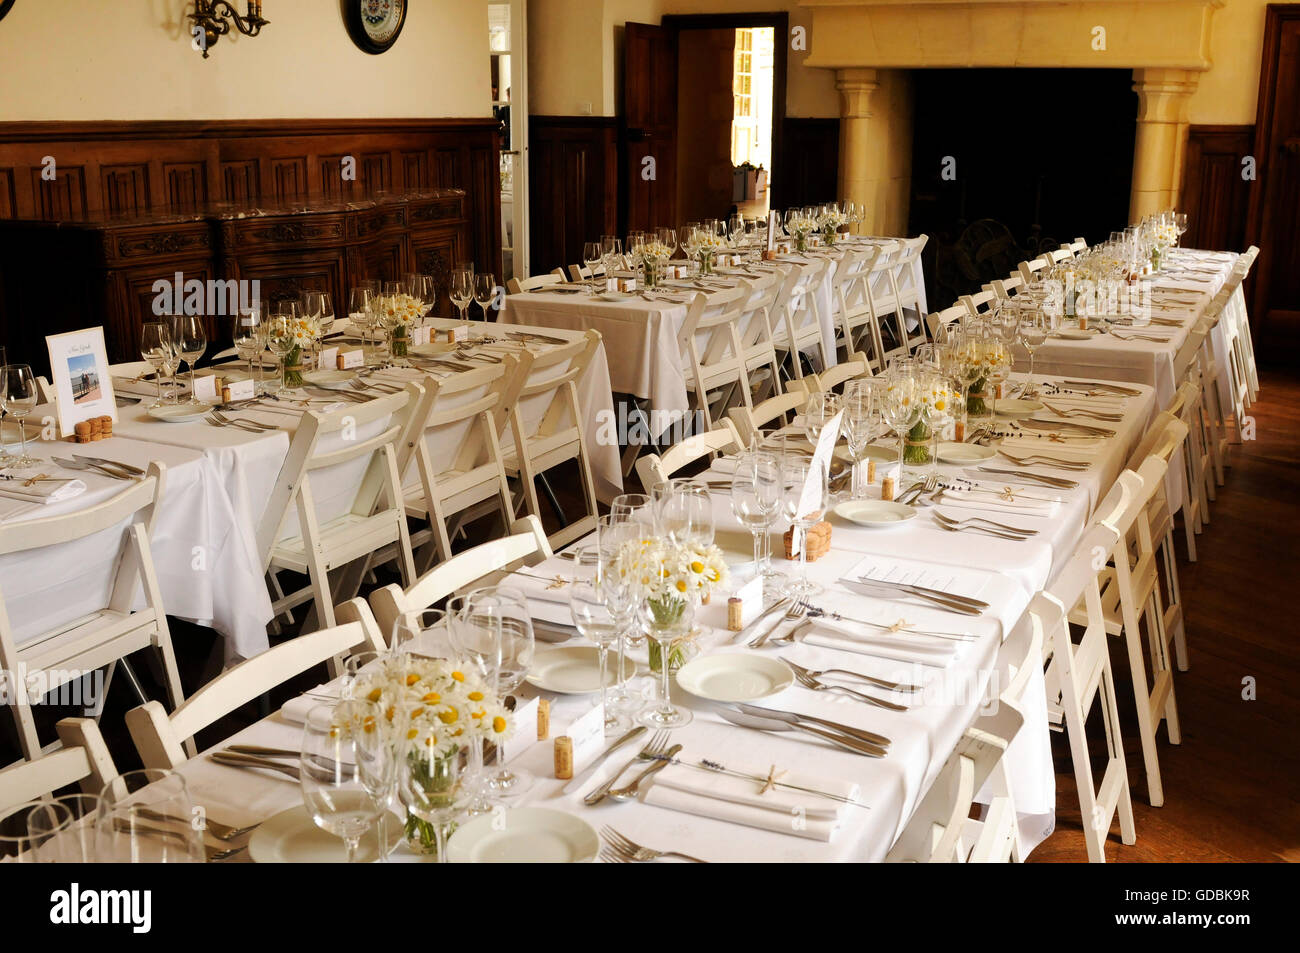 Tables laid out for a wedding reception - Stock Image